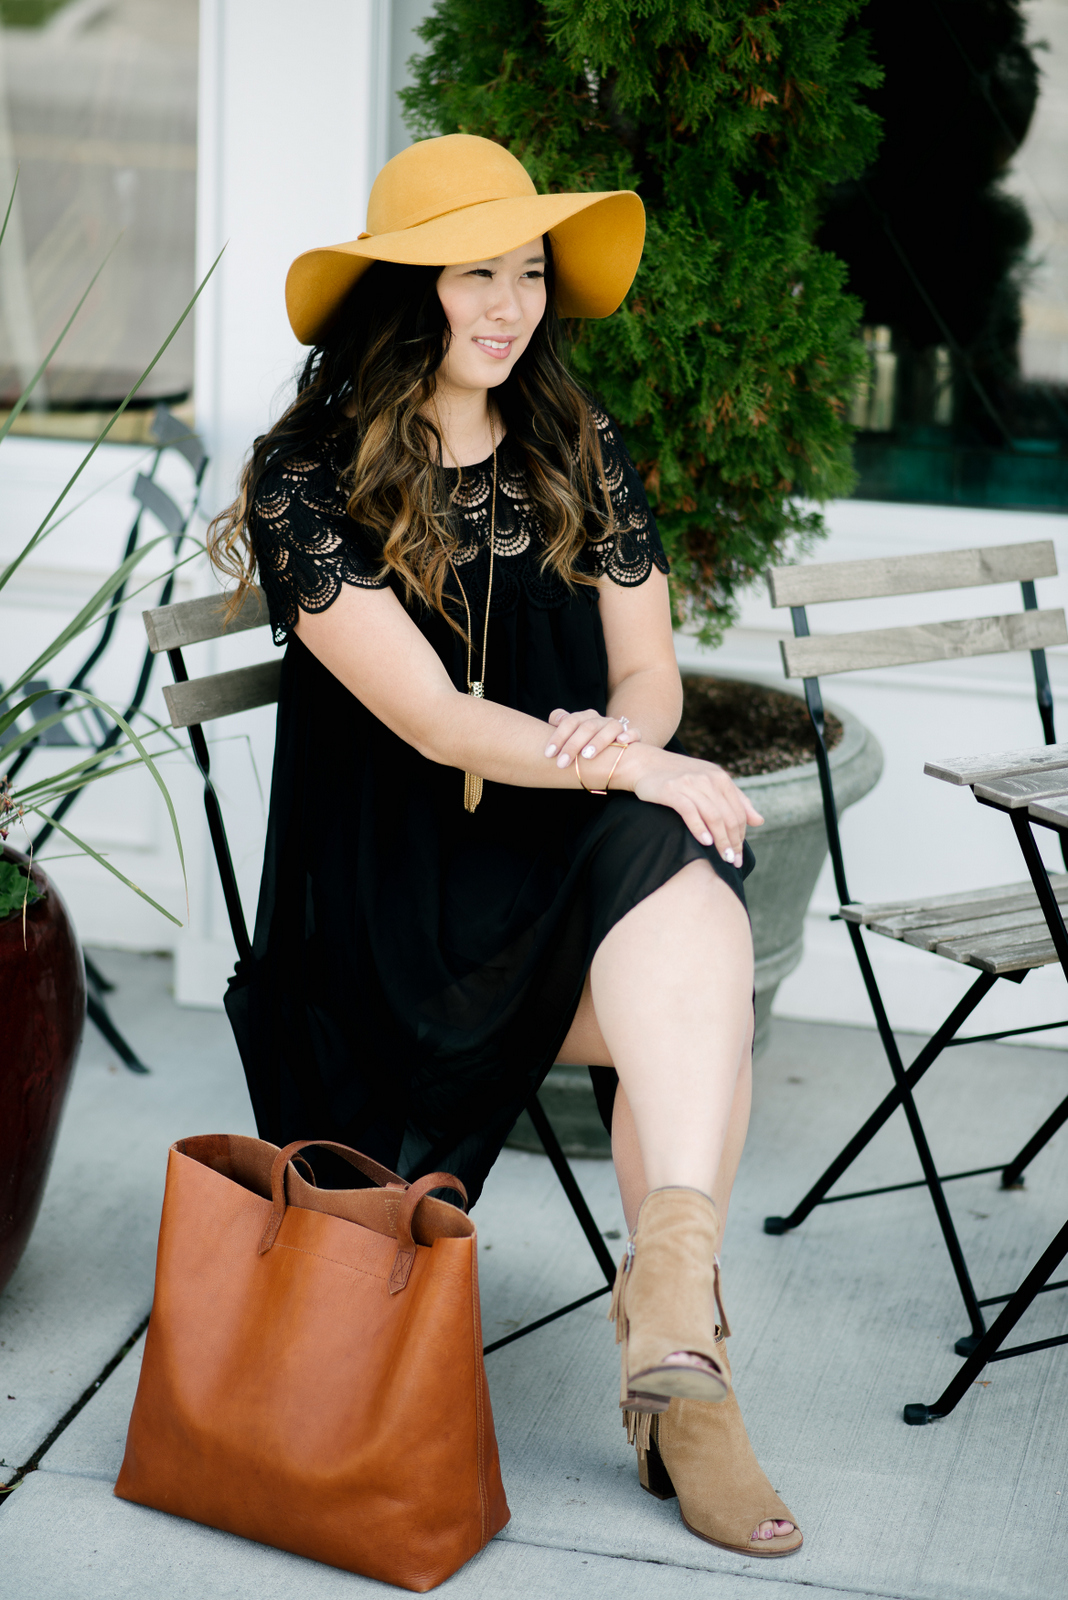 Black bohemian dress and hat